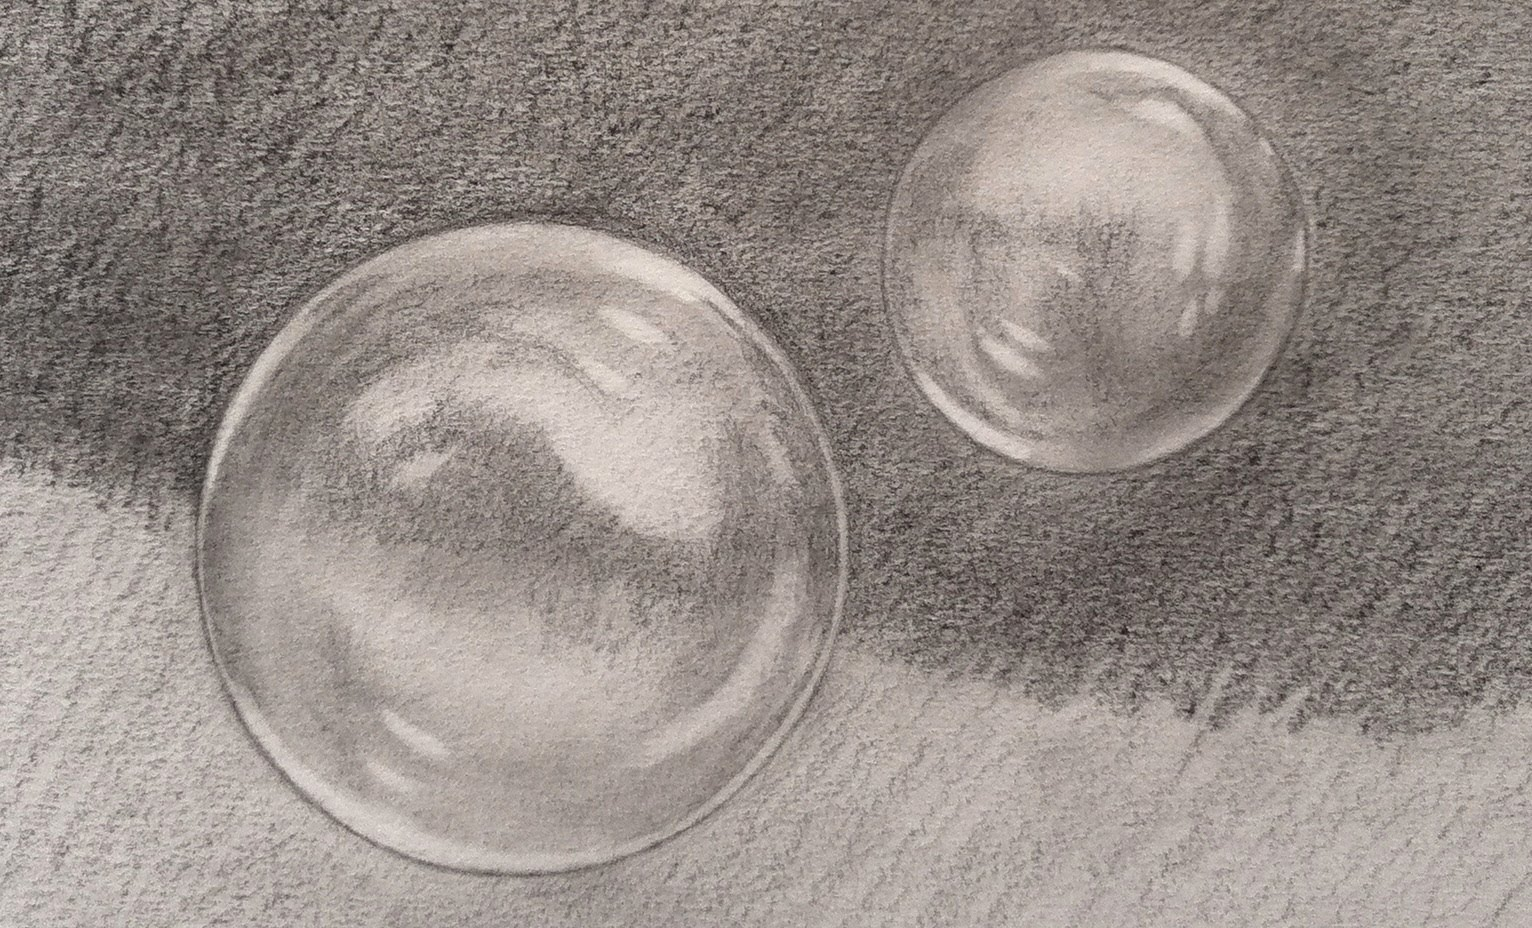 1532x928 How To Draw Soap Bubbles